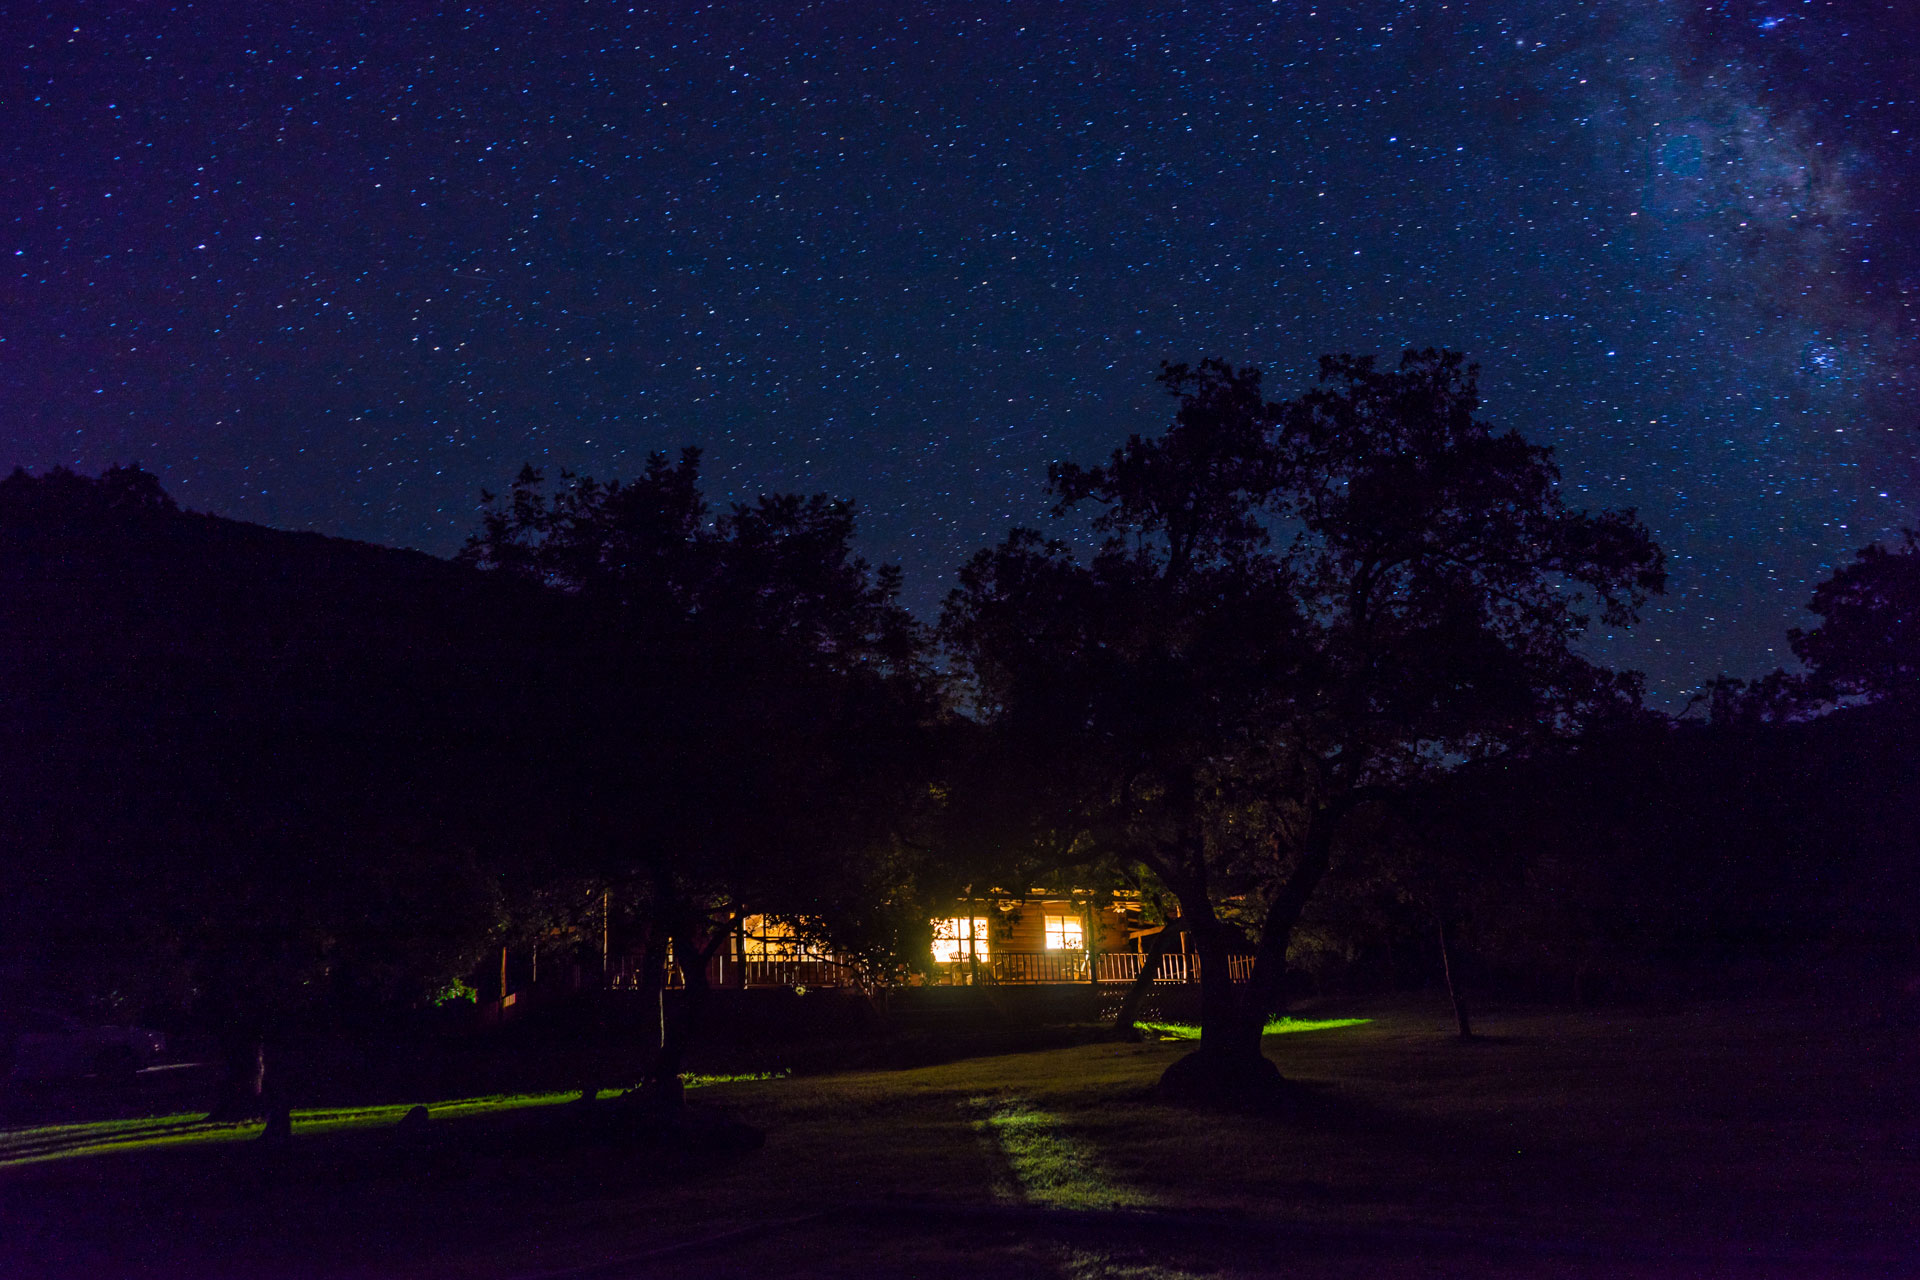 Texas Hill Country Night Stars